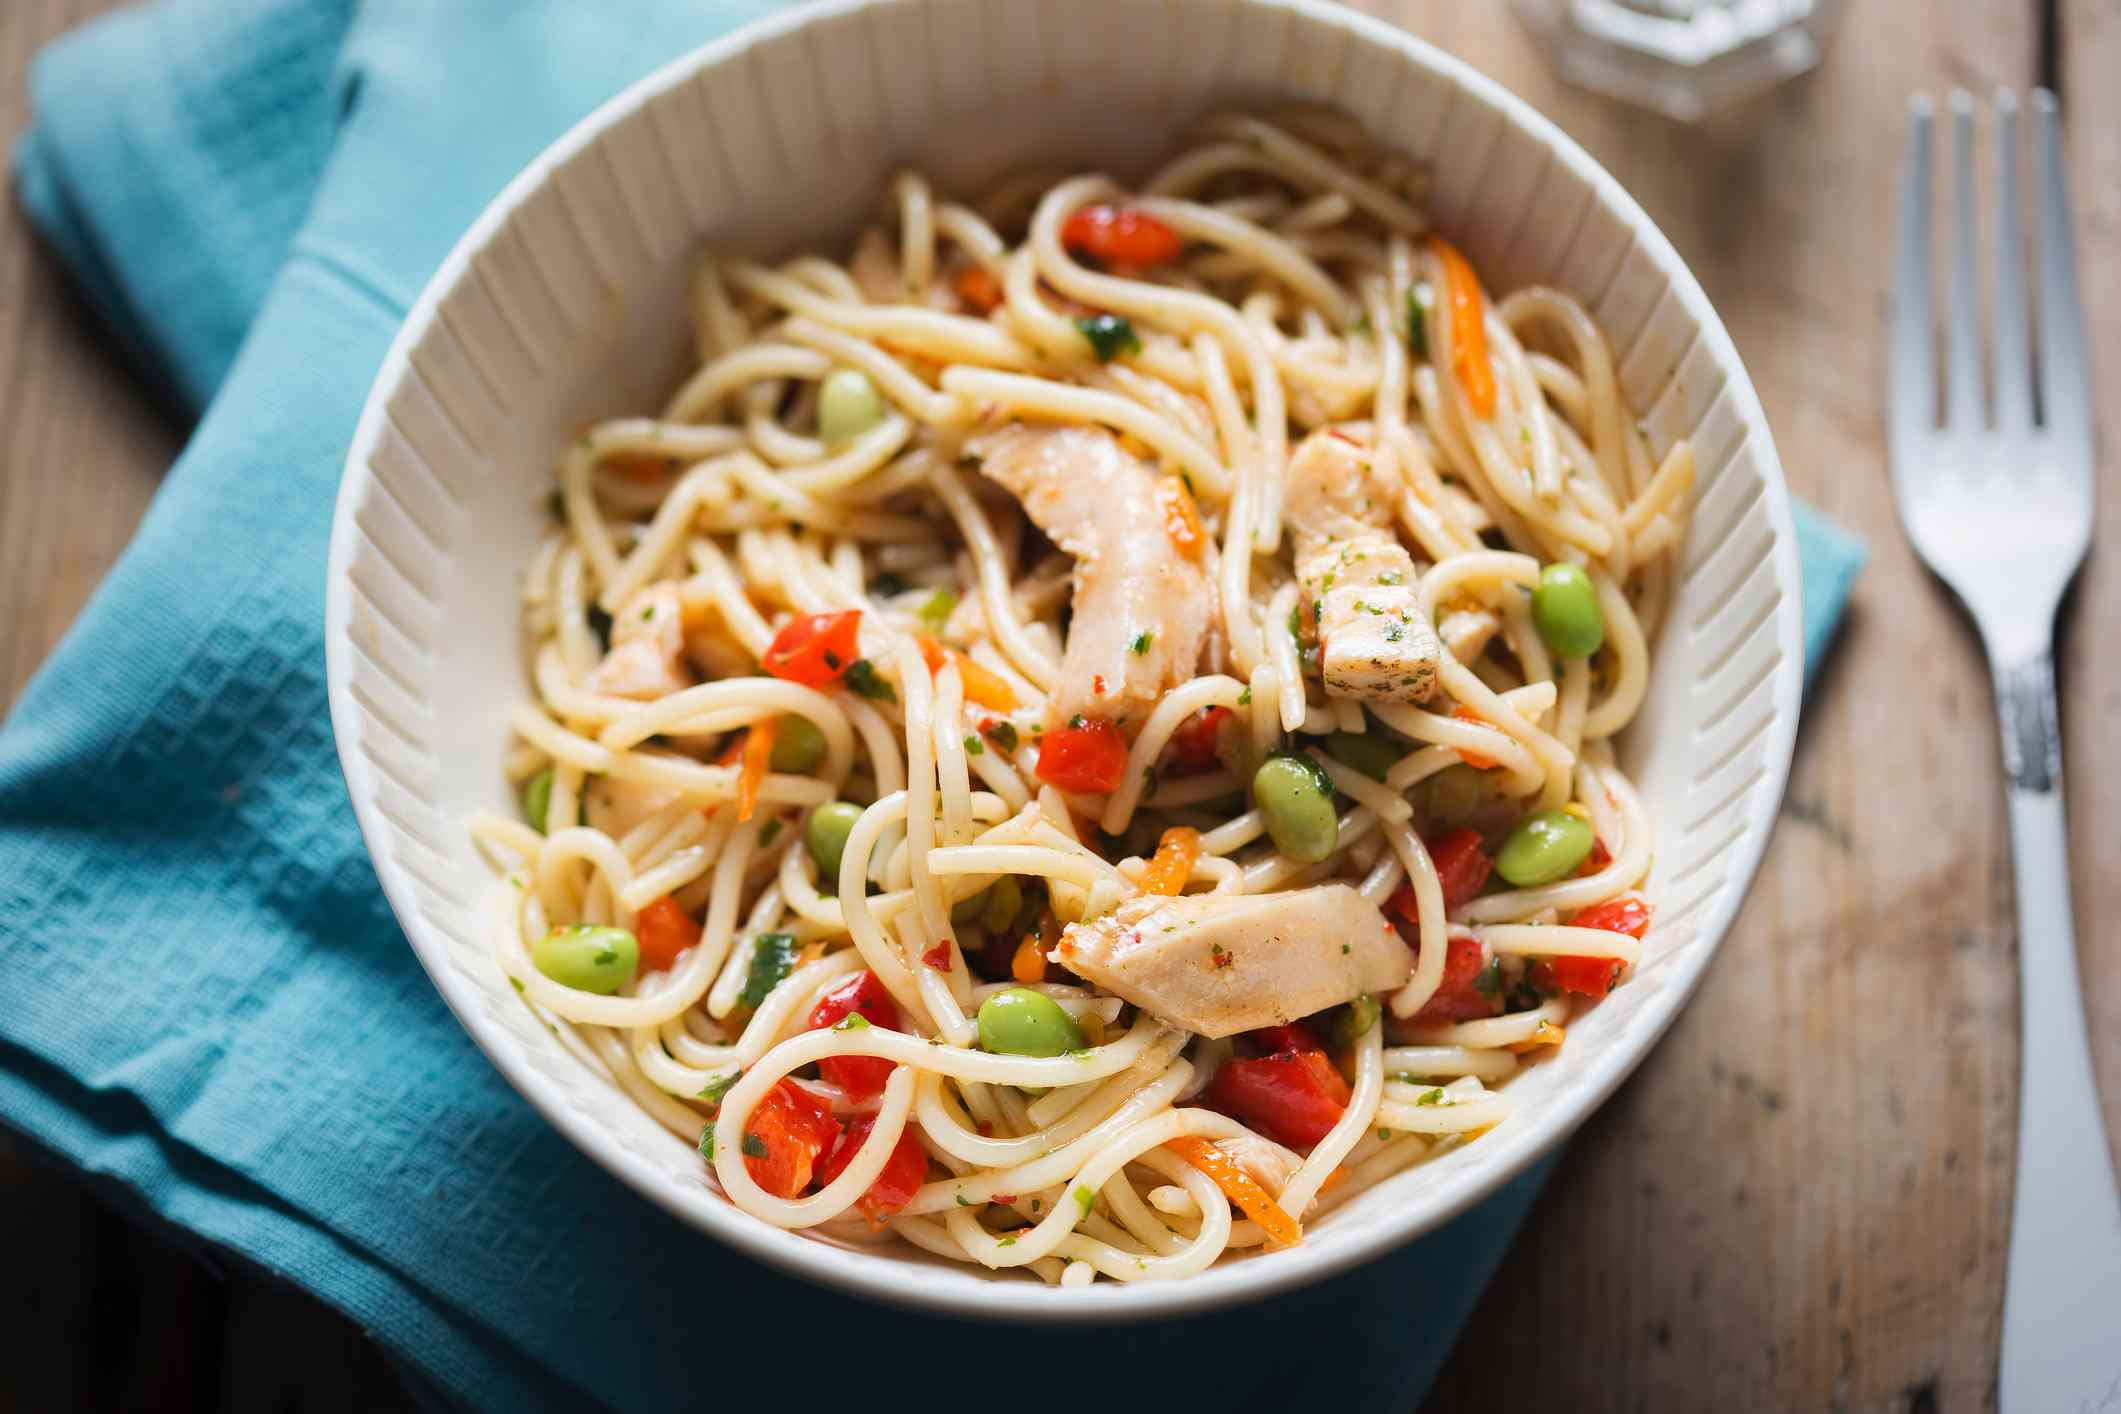 Sweet chilli chicken pasta salad with edamame and red peppers